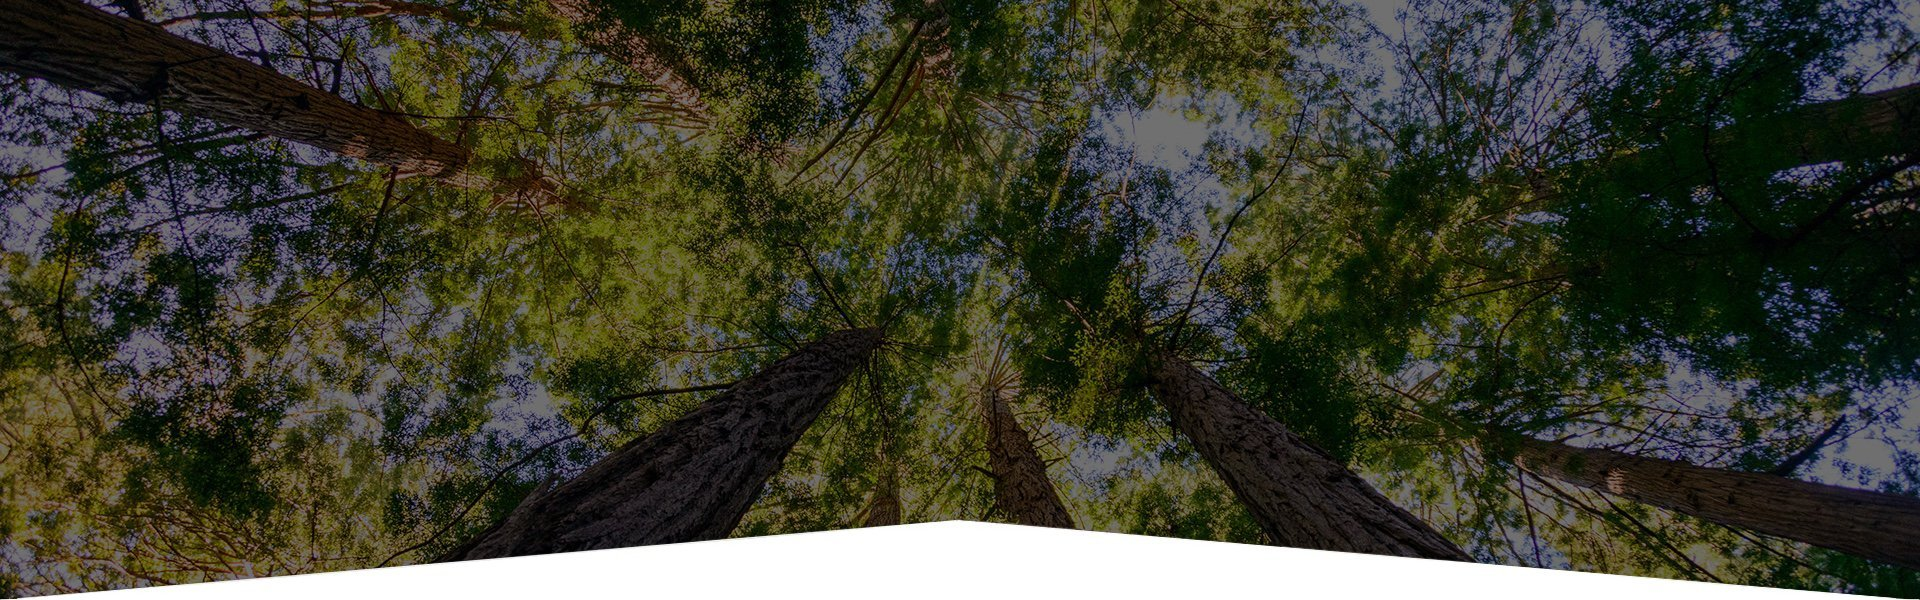 Looking up at tall trees slider